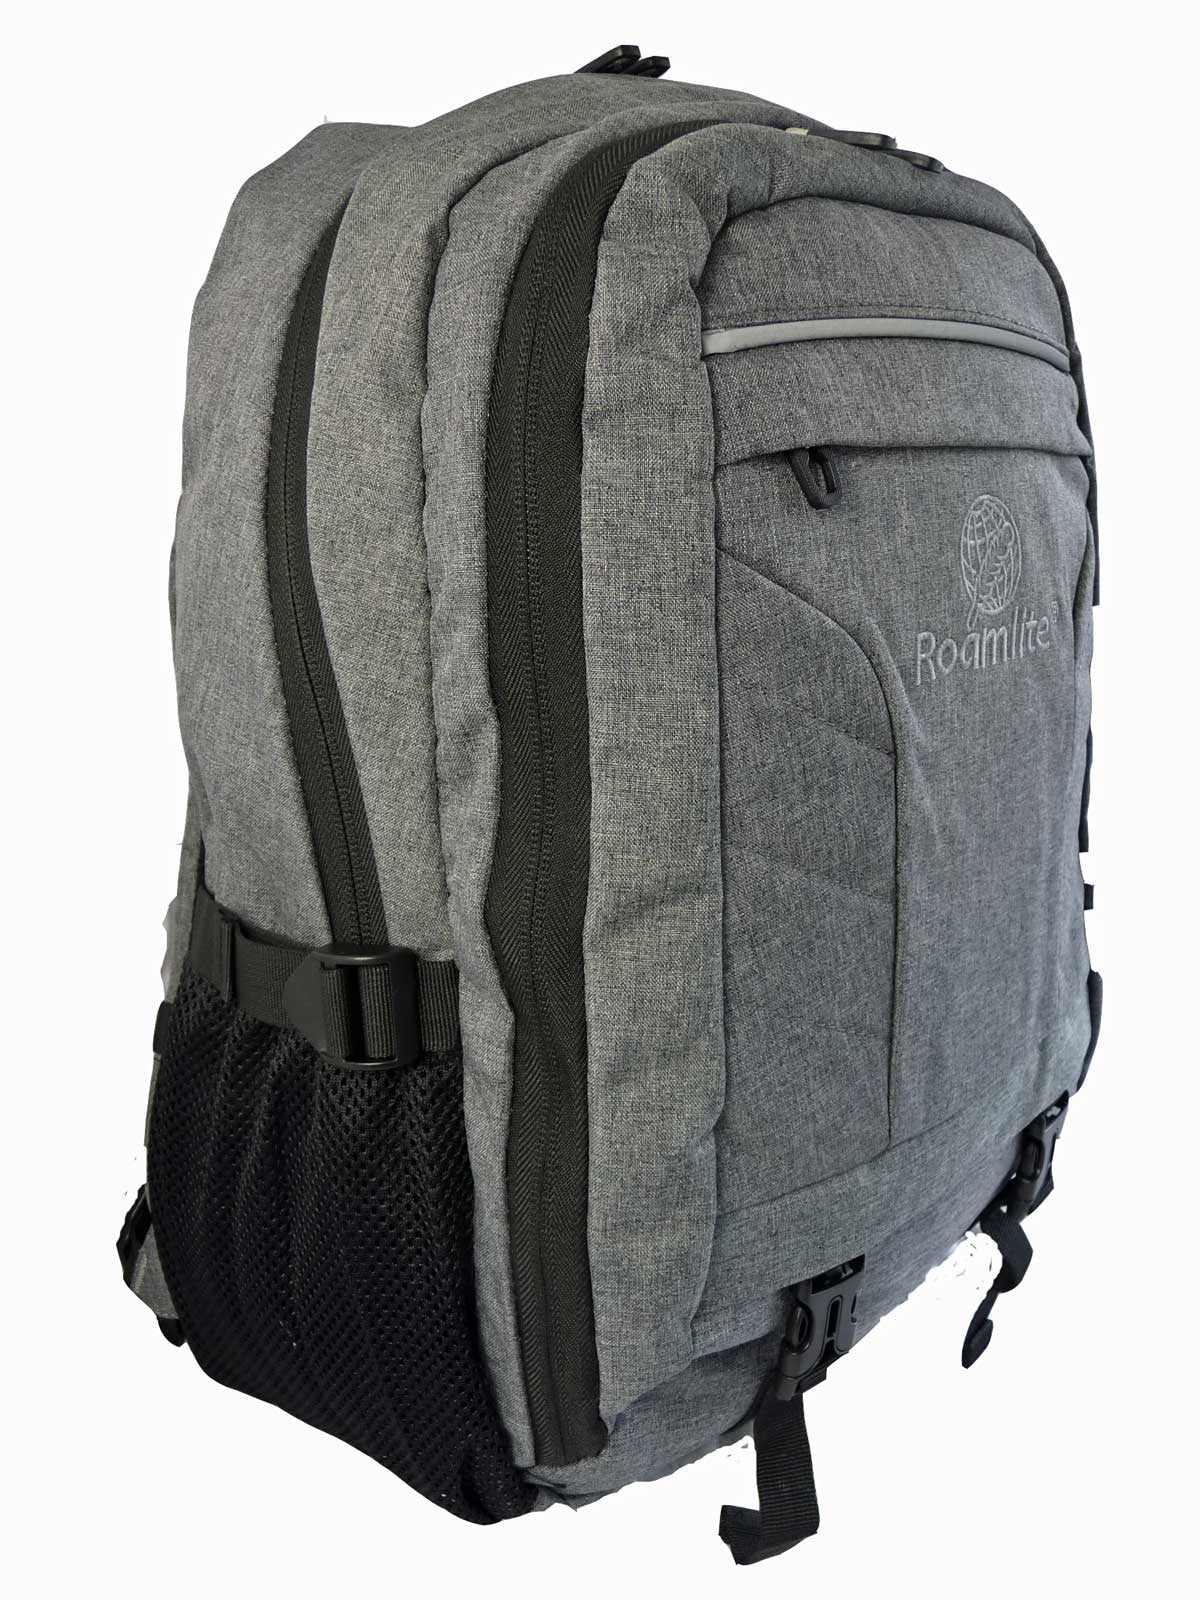 Laptop Macbook Backpack Rucksack Bag RL45GY Side View